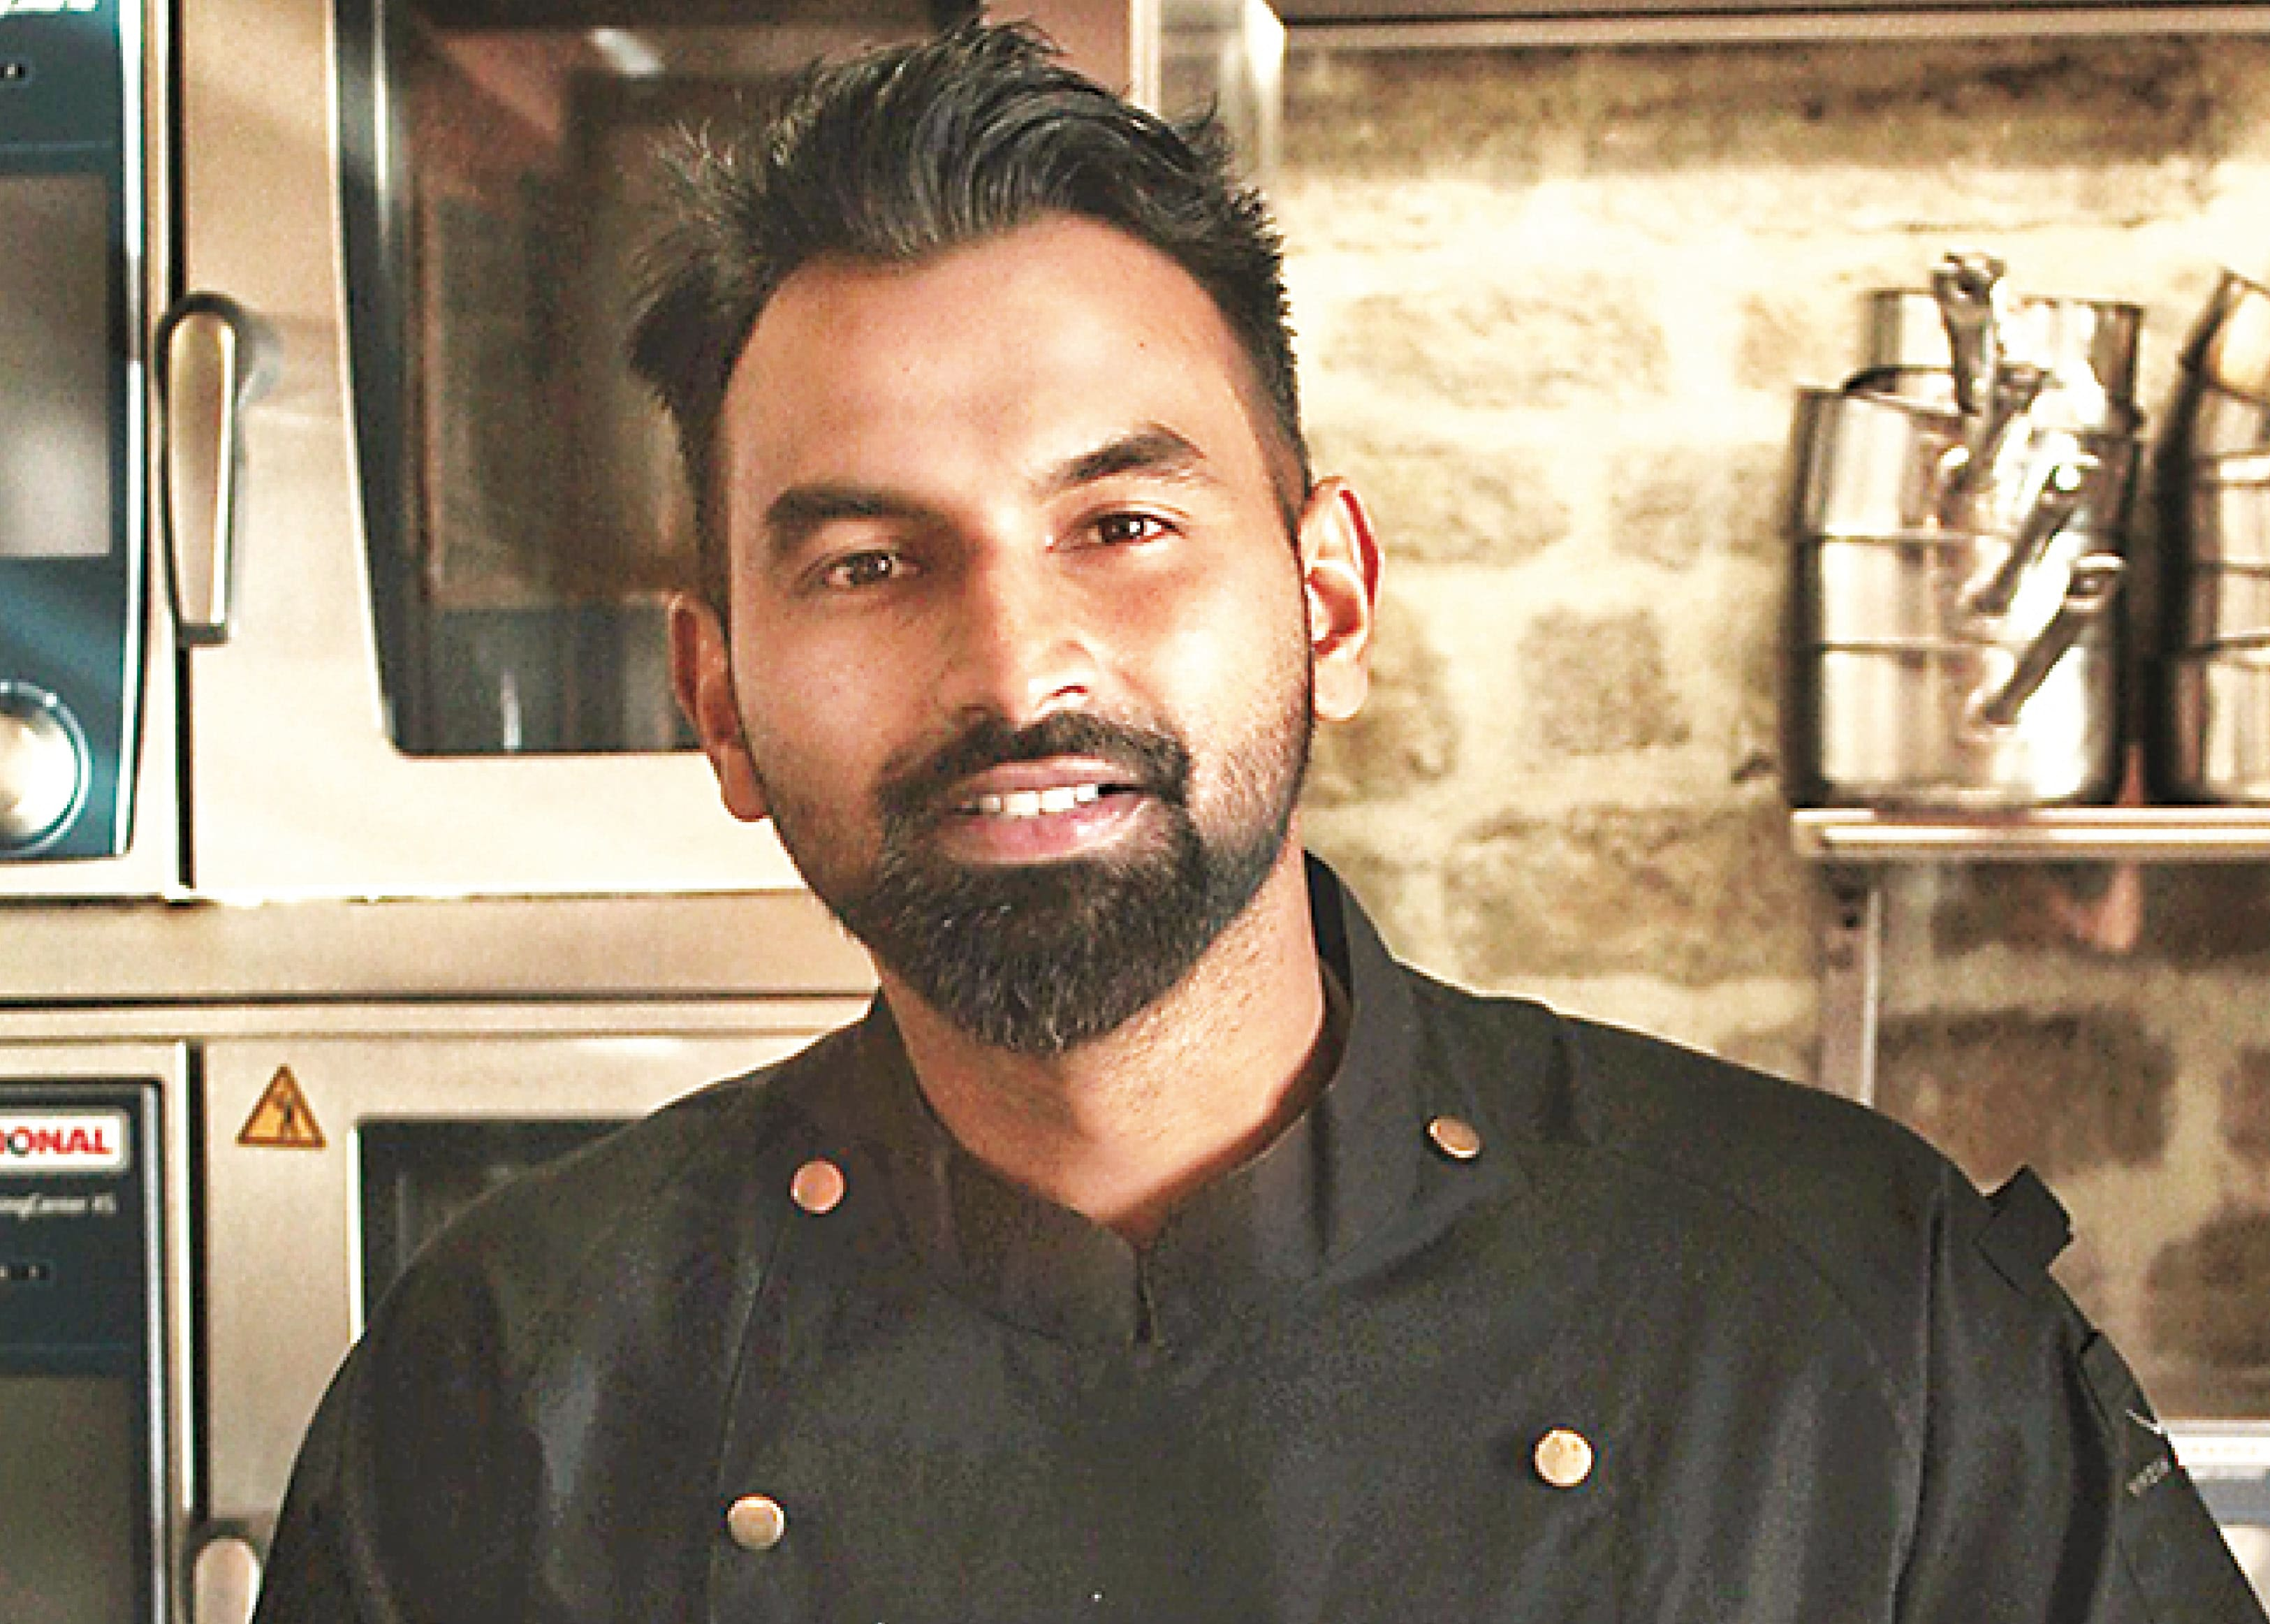 Chef Vinesh Johny explains the easier way of making a molten chocolate cake is by using ganache